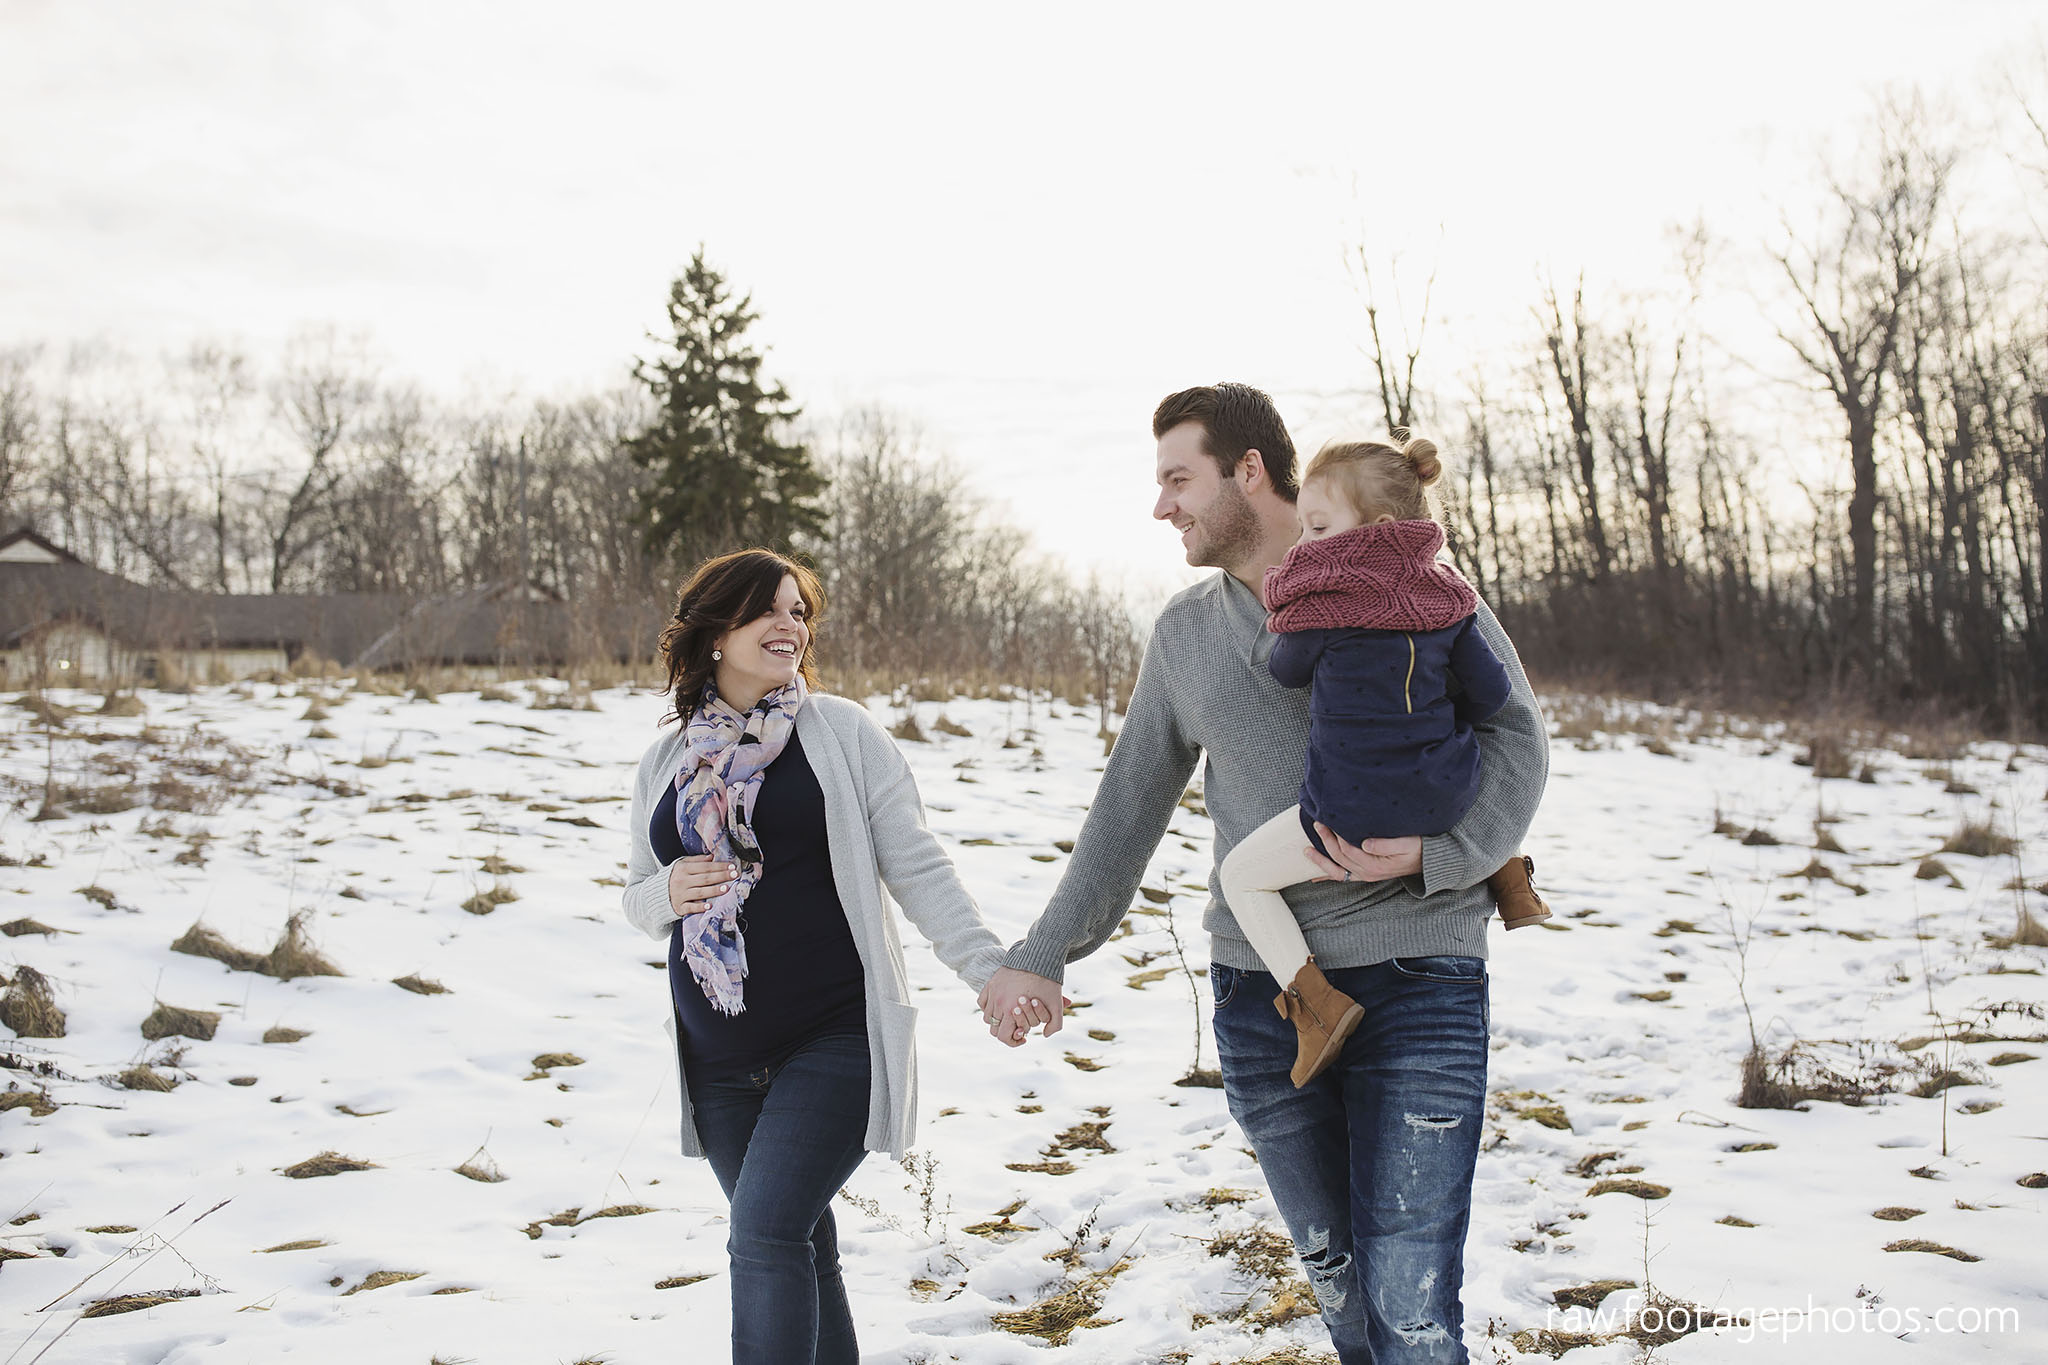 London_Ontario_Maternity_Photographer-Maternity_Session-Family_Photography-Winter_Photos-Raw_Footage_Photography005.jpg